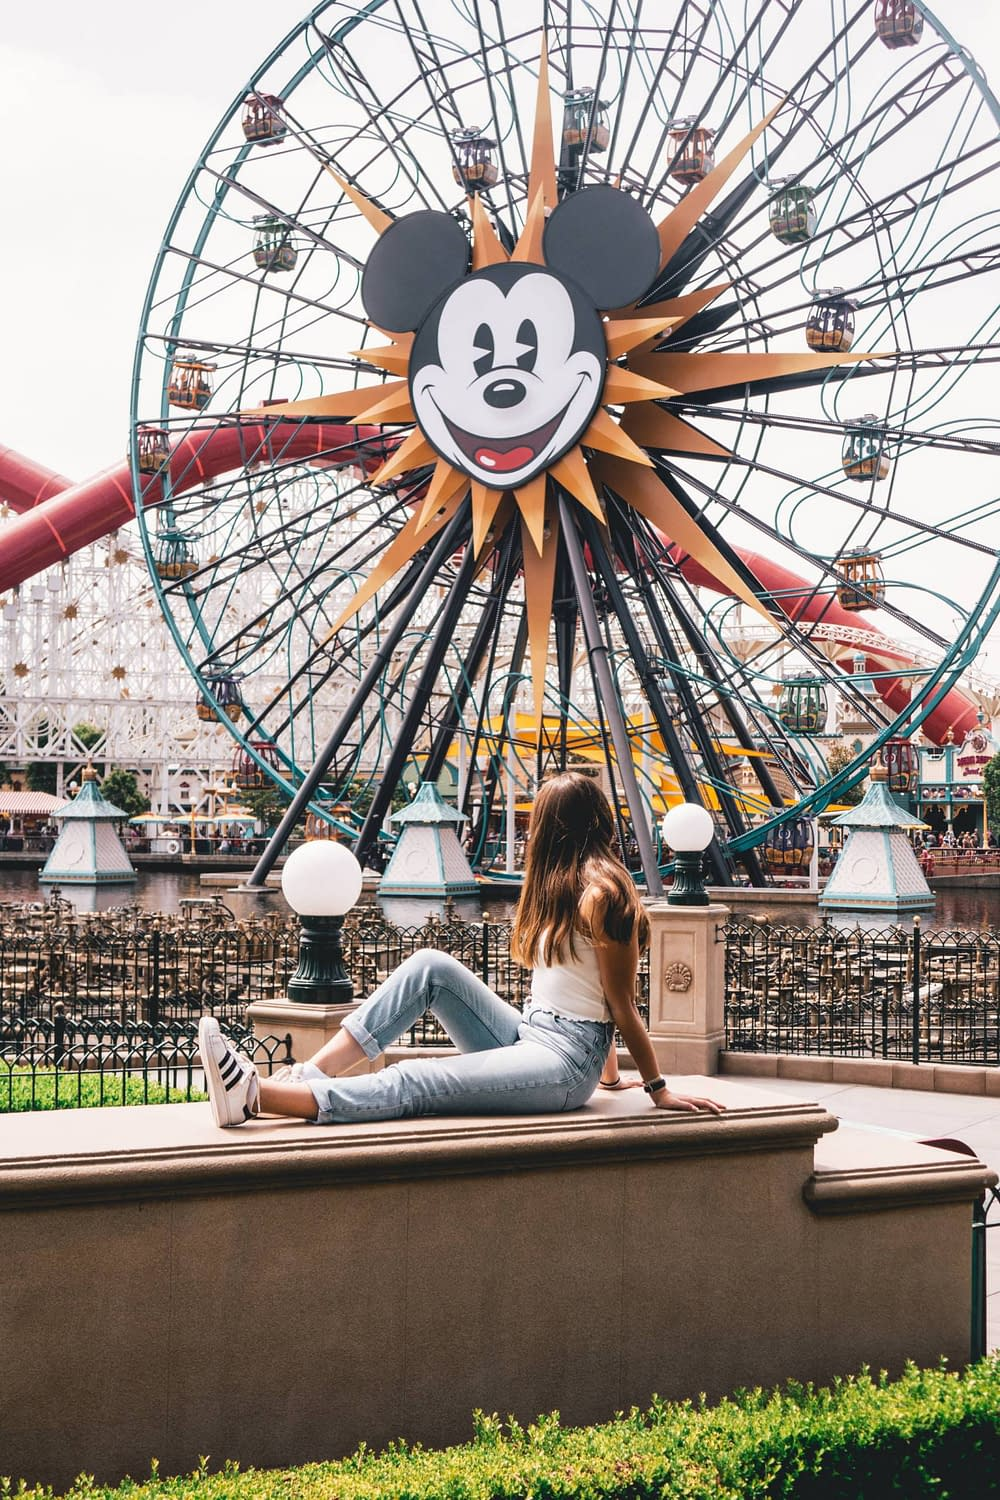 A girl posing in front of the Mickey Mouse Ferris Wheel in Disneyland California.